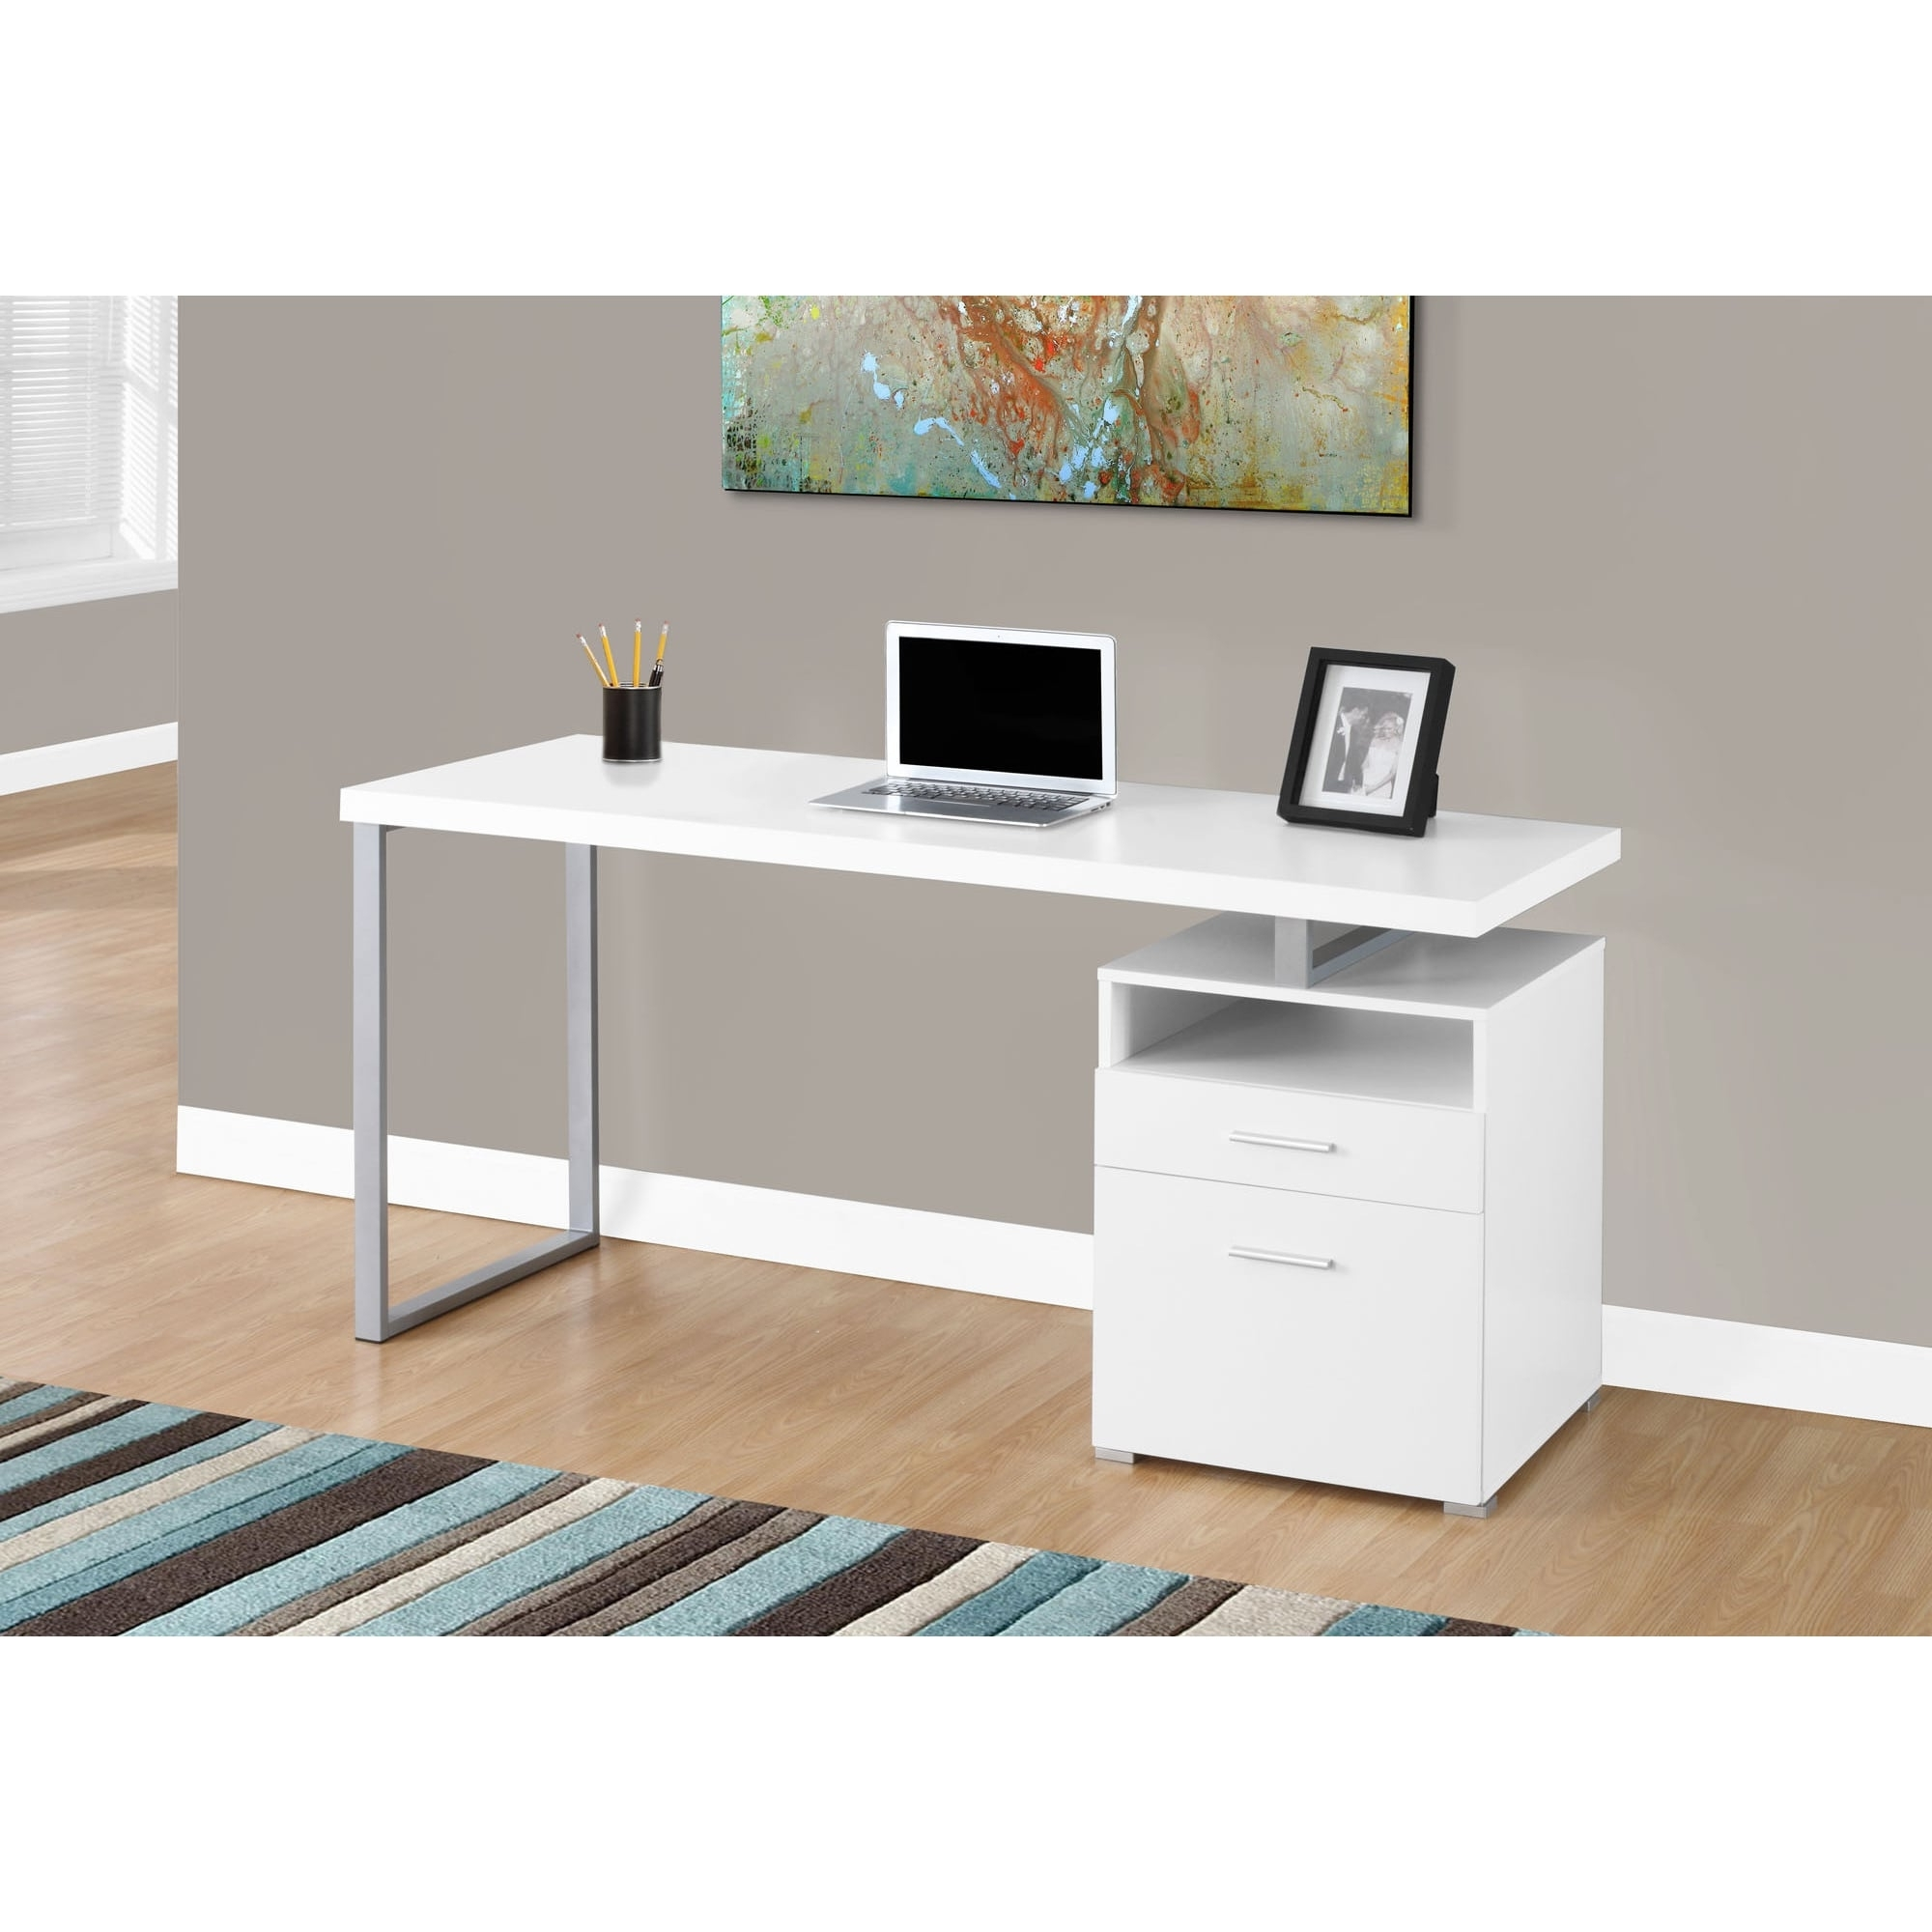 Oliver & James Joffe White Metal Computer Desk – Free Shipping Throughout Newest White Computer Desks (View 17 of 20)